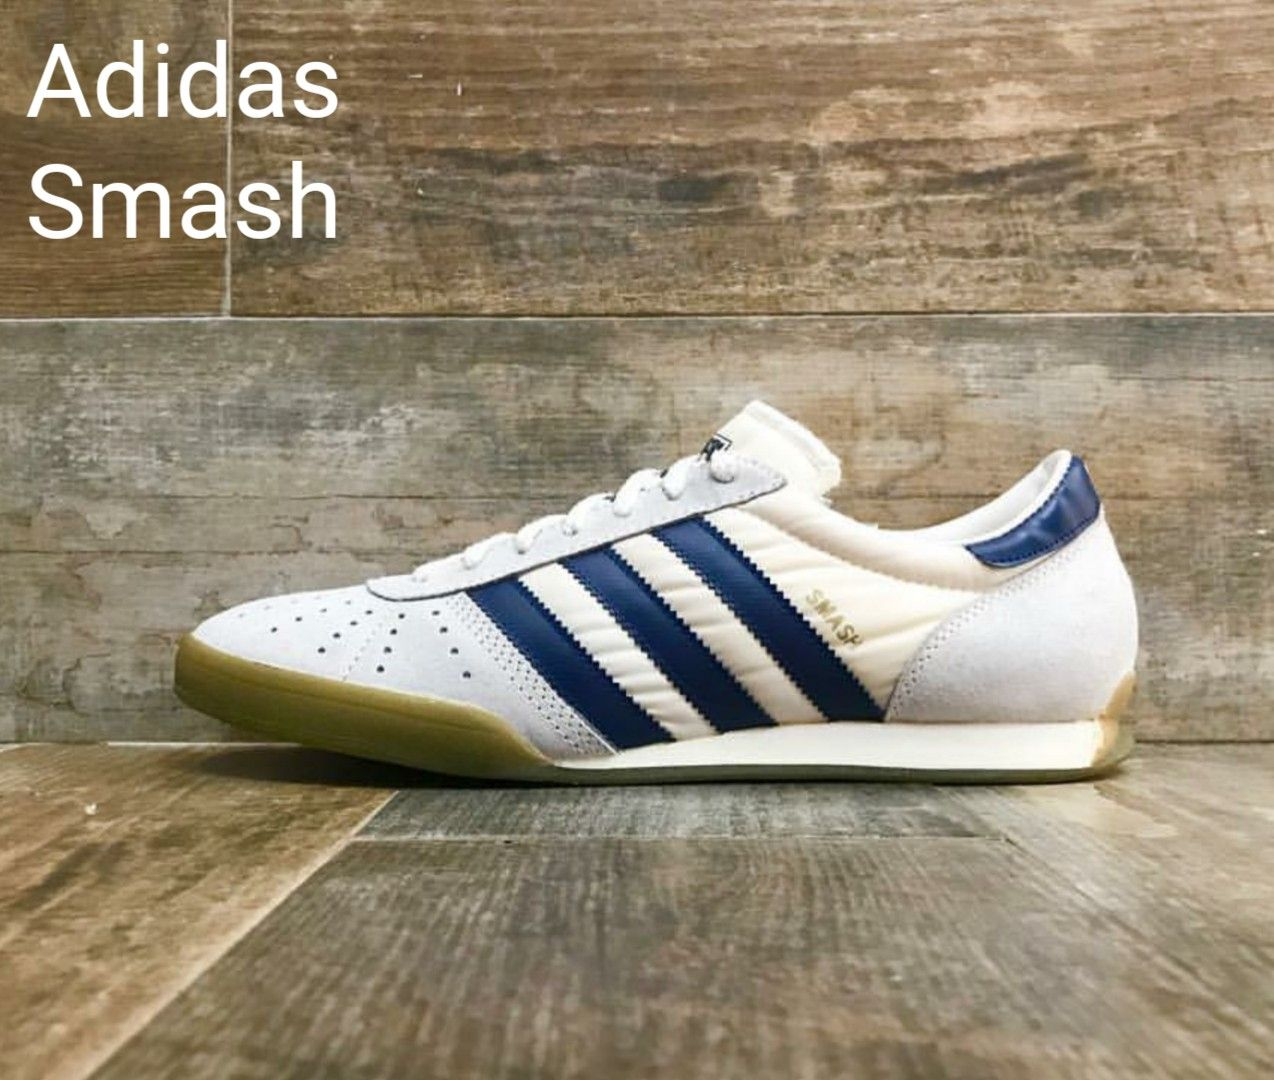 18123c874a0e7 Vintage Adidas Smash from 1984